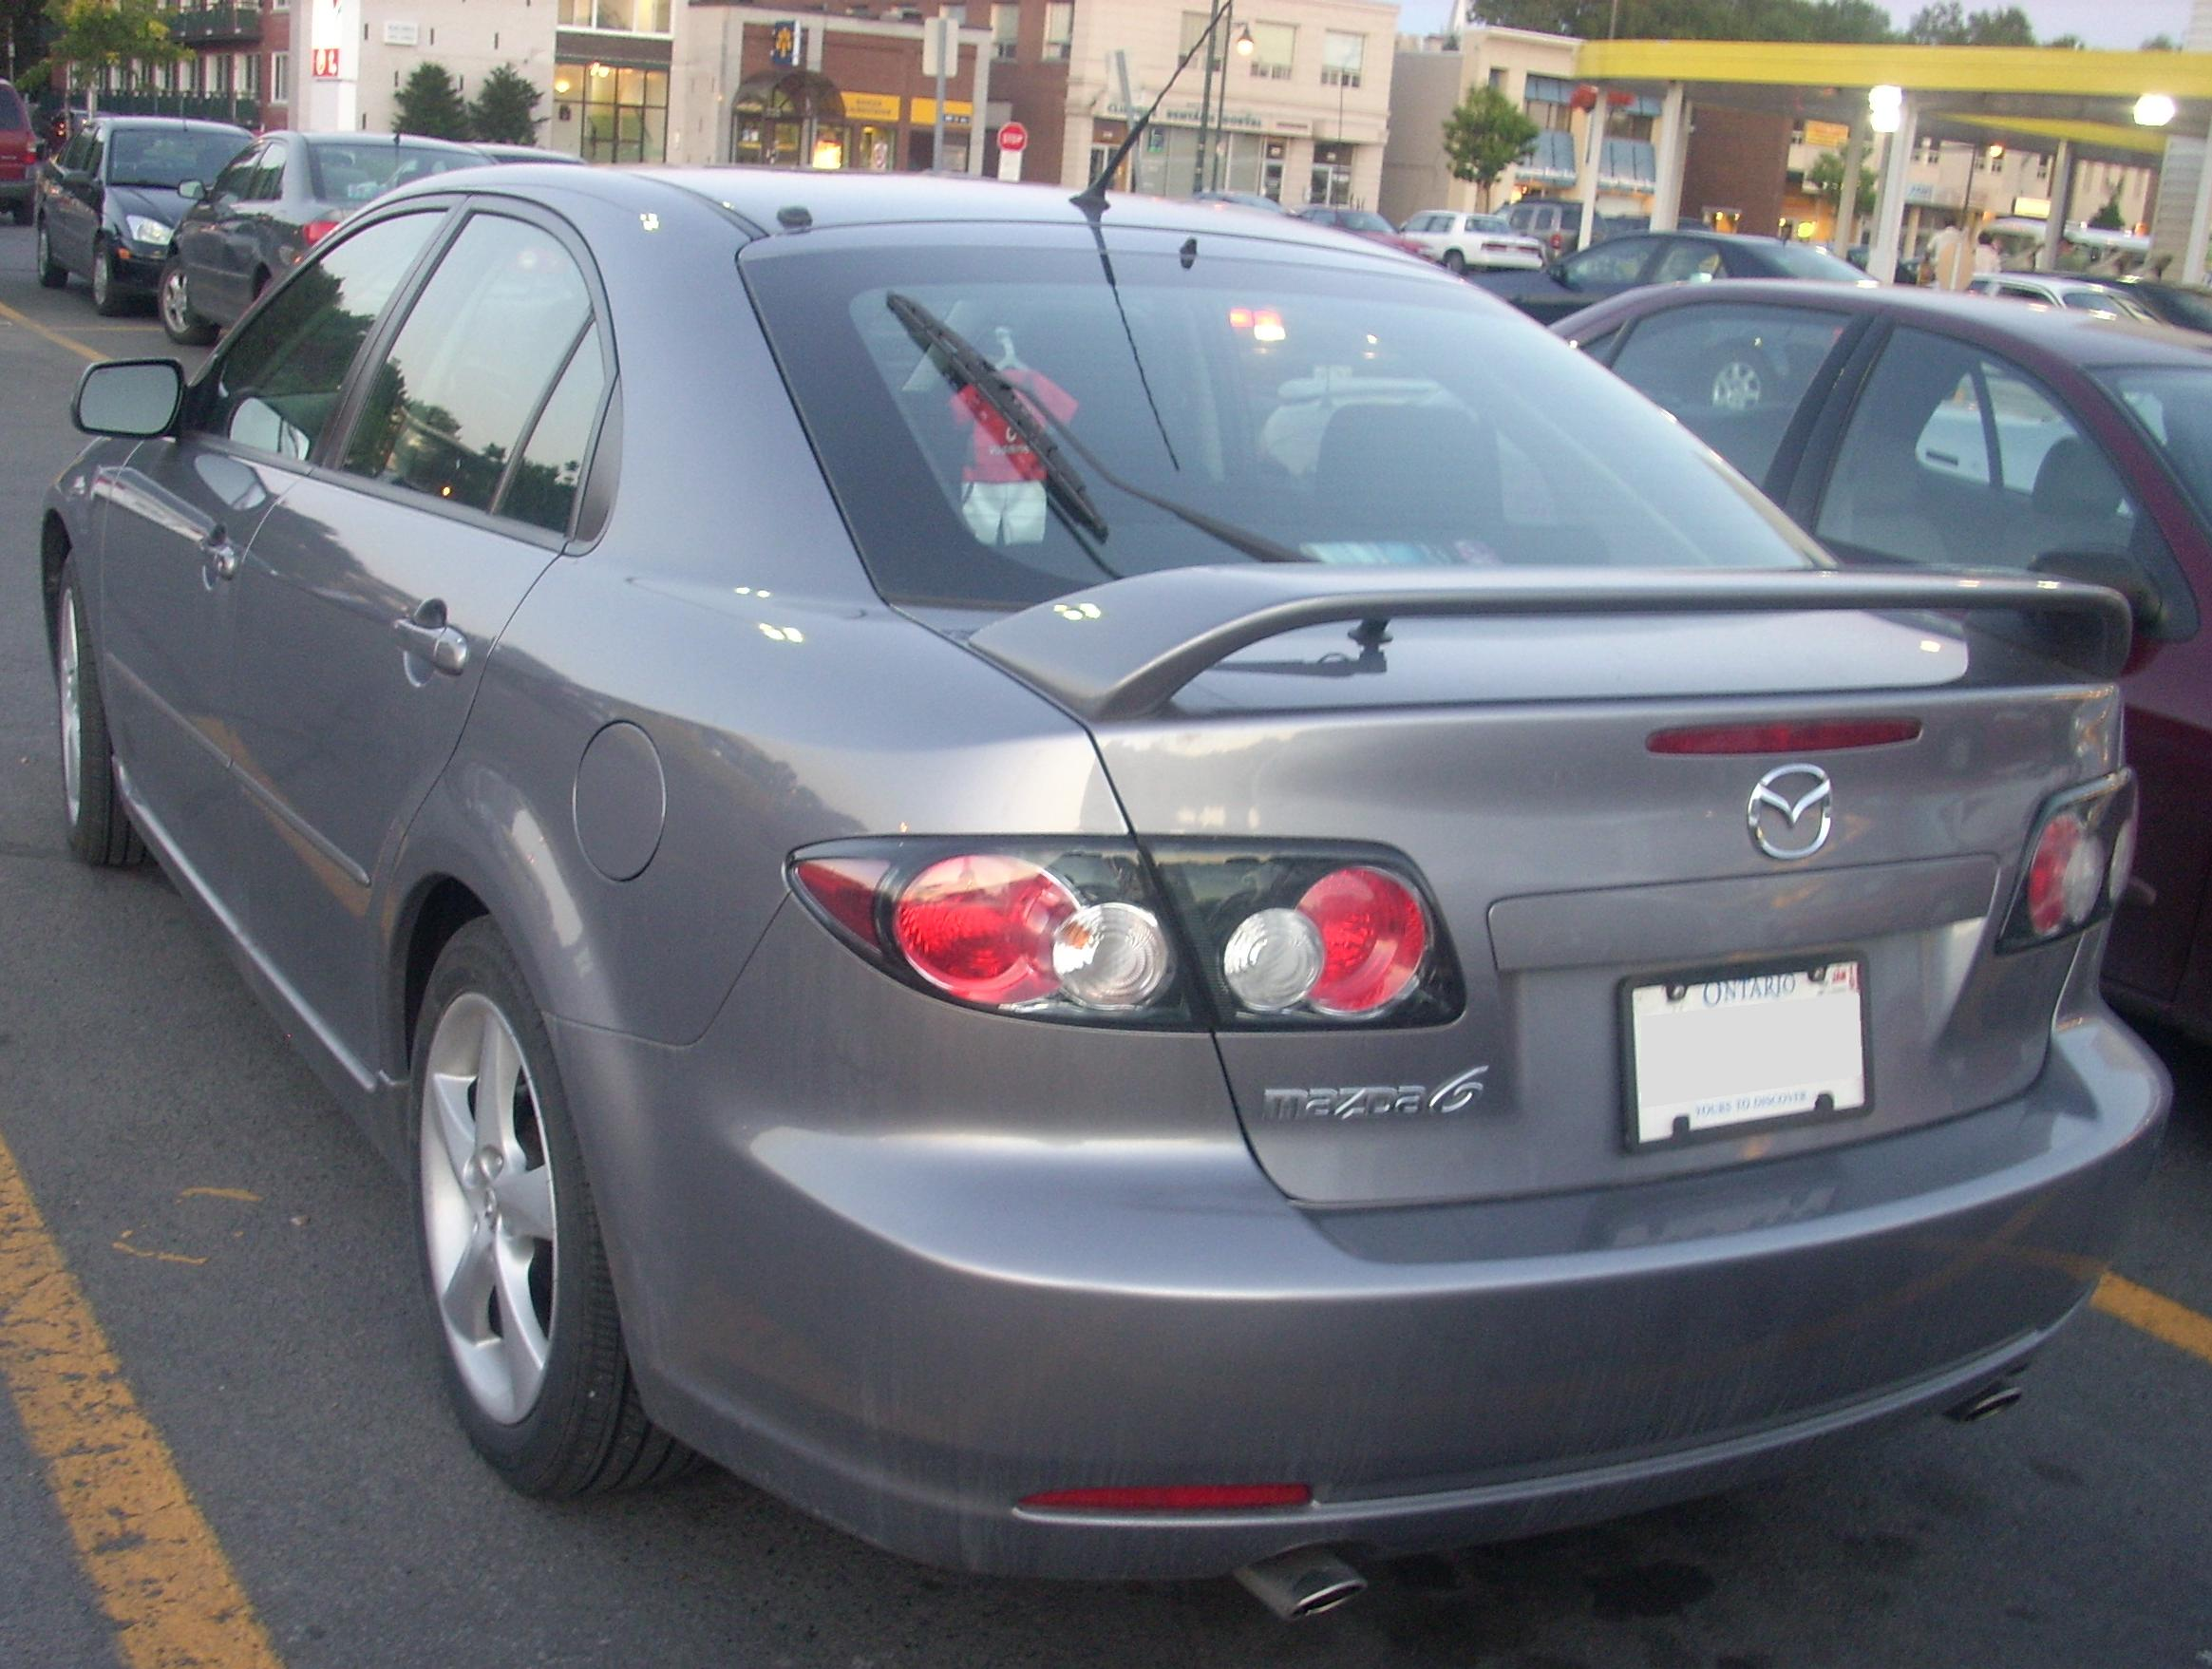 https://upload.wikimedia.org/wikipedia/commons/5/50/%2706-%2708_Mazda6_Hatchback.JPG